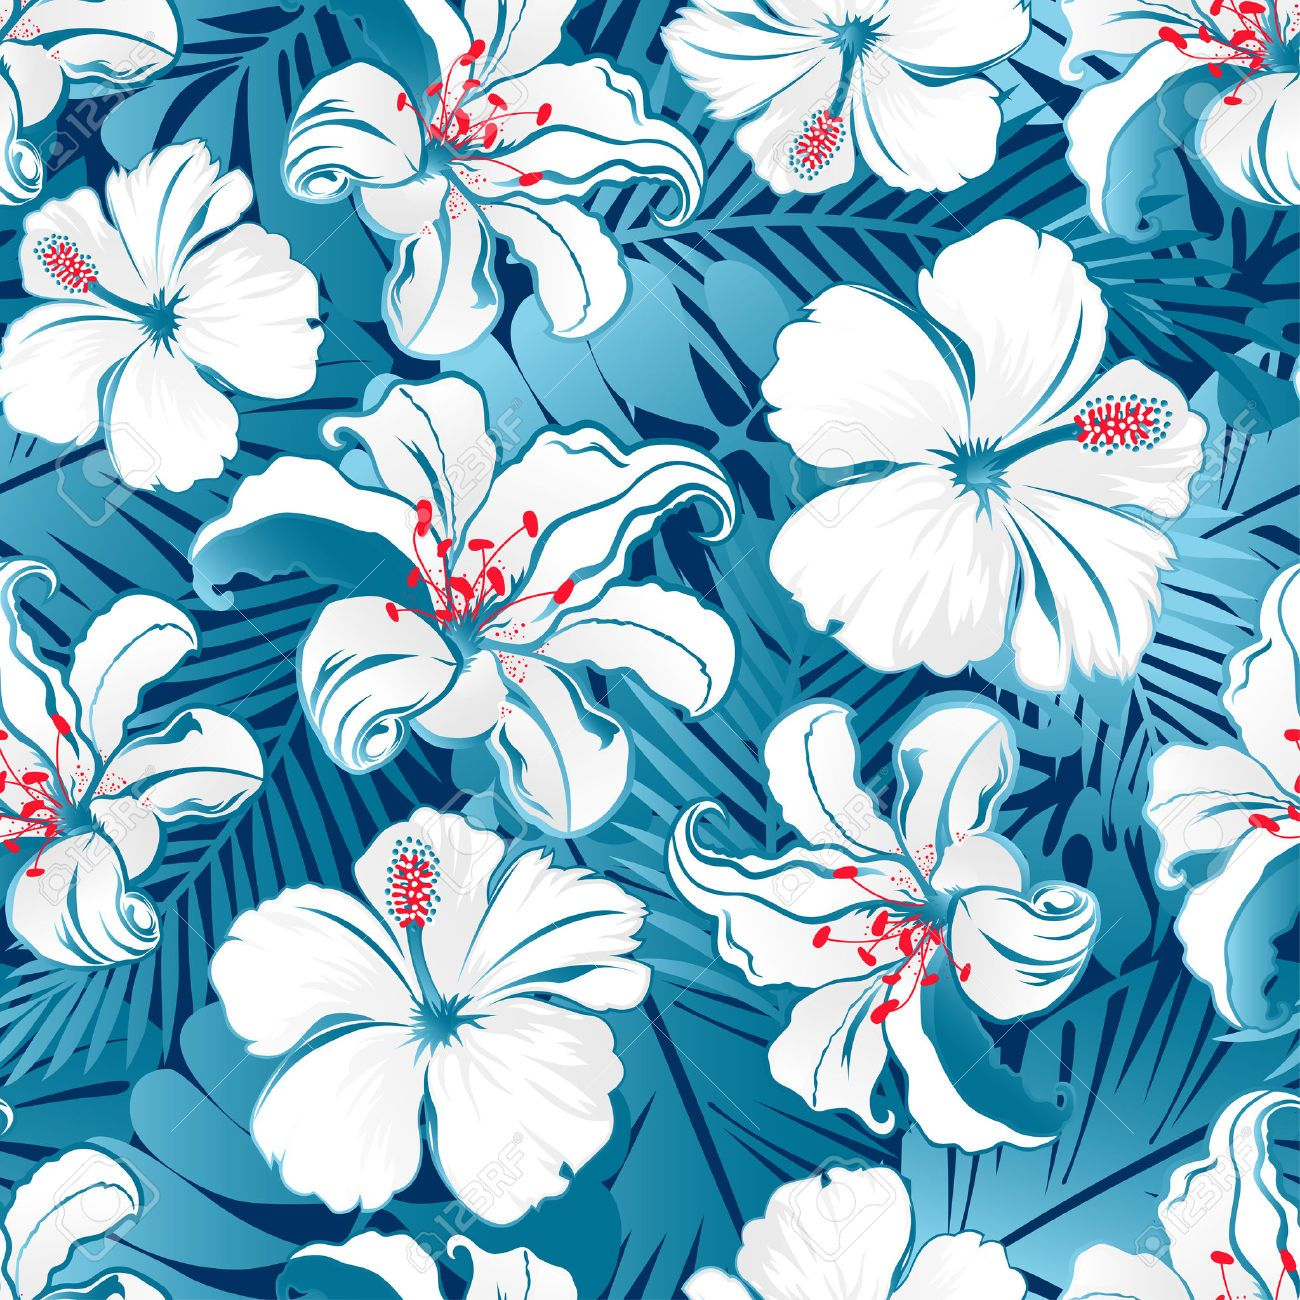 Pin By Philip Abowd On Surfside Pinterest Tropical Blue And